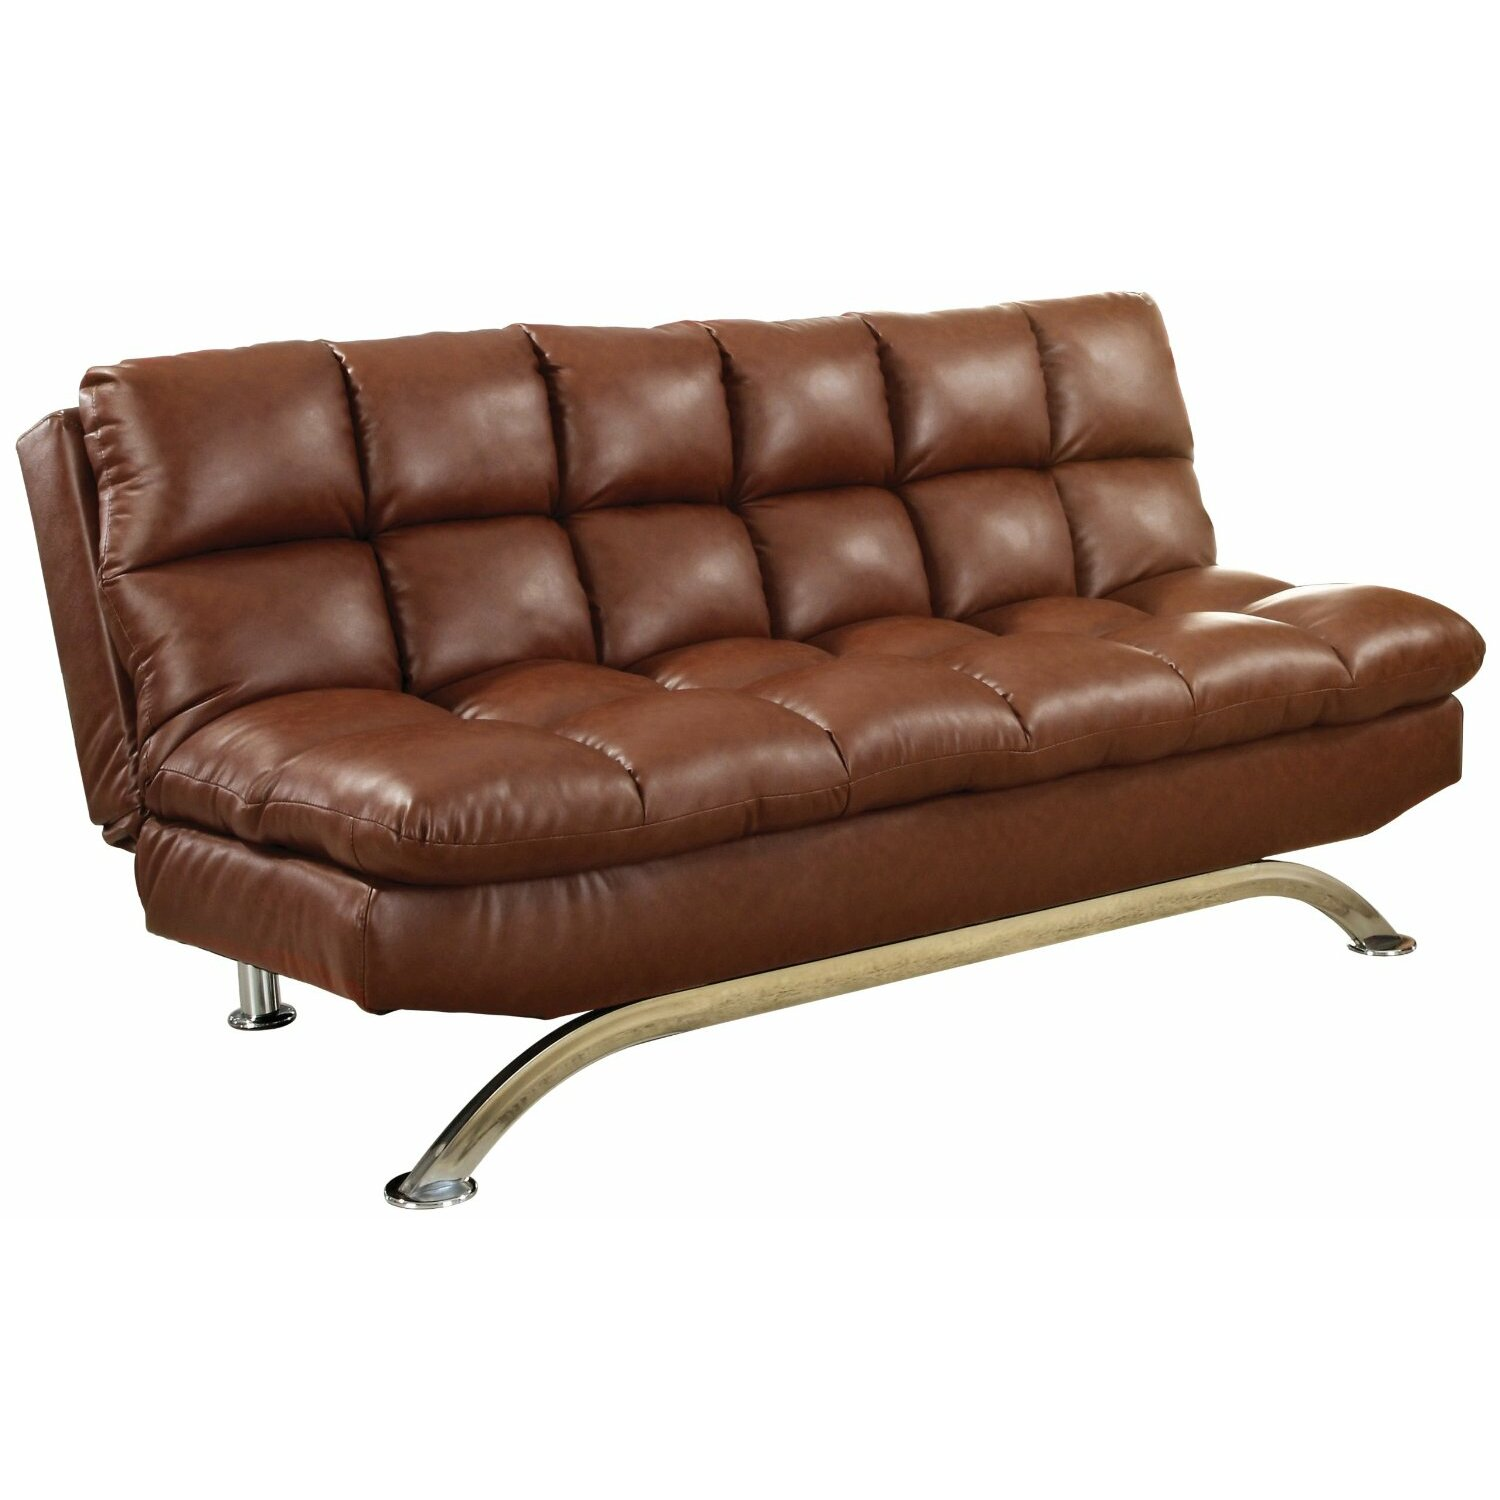 Convertible Ottoman Chair Costco: Hokku Designs Aristo Convertible Sofa & Reviews